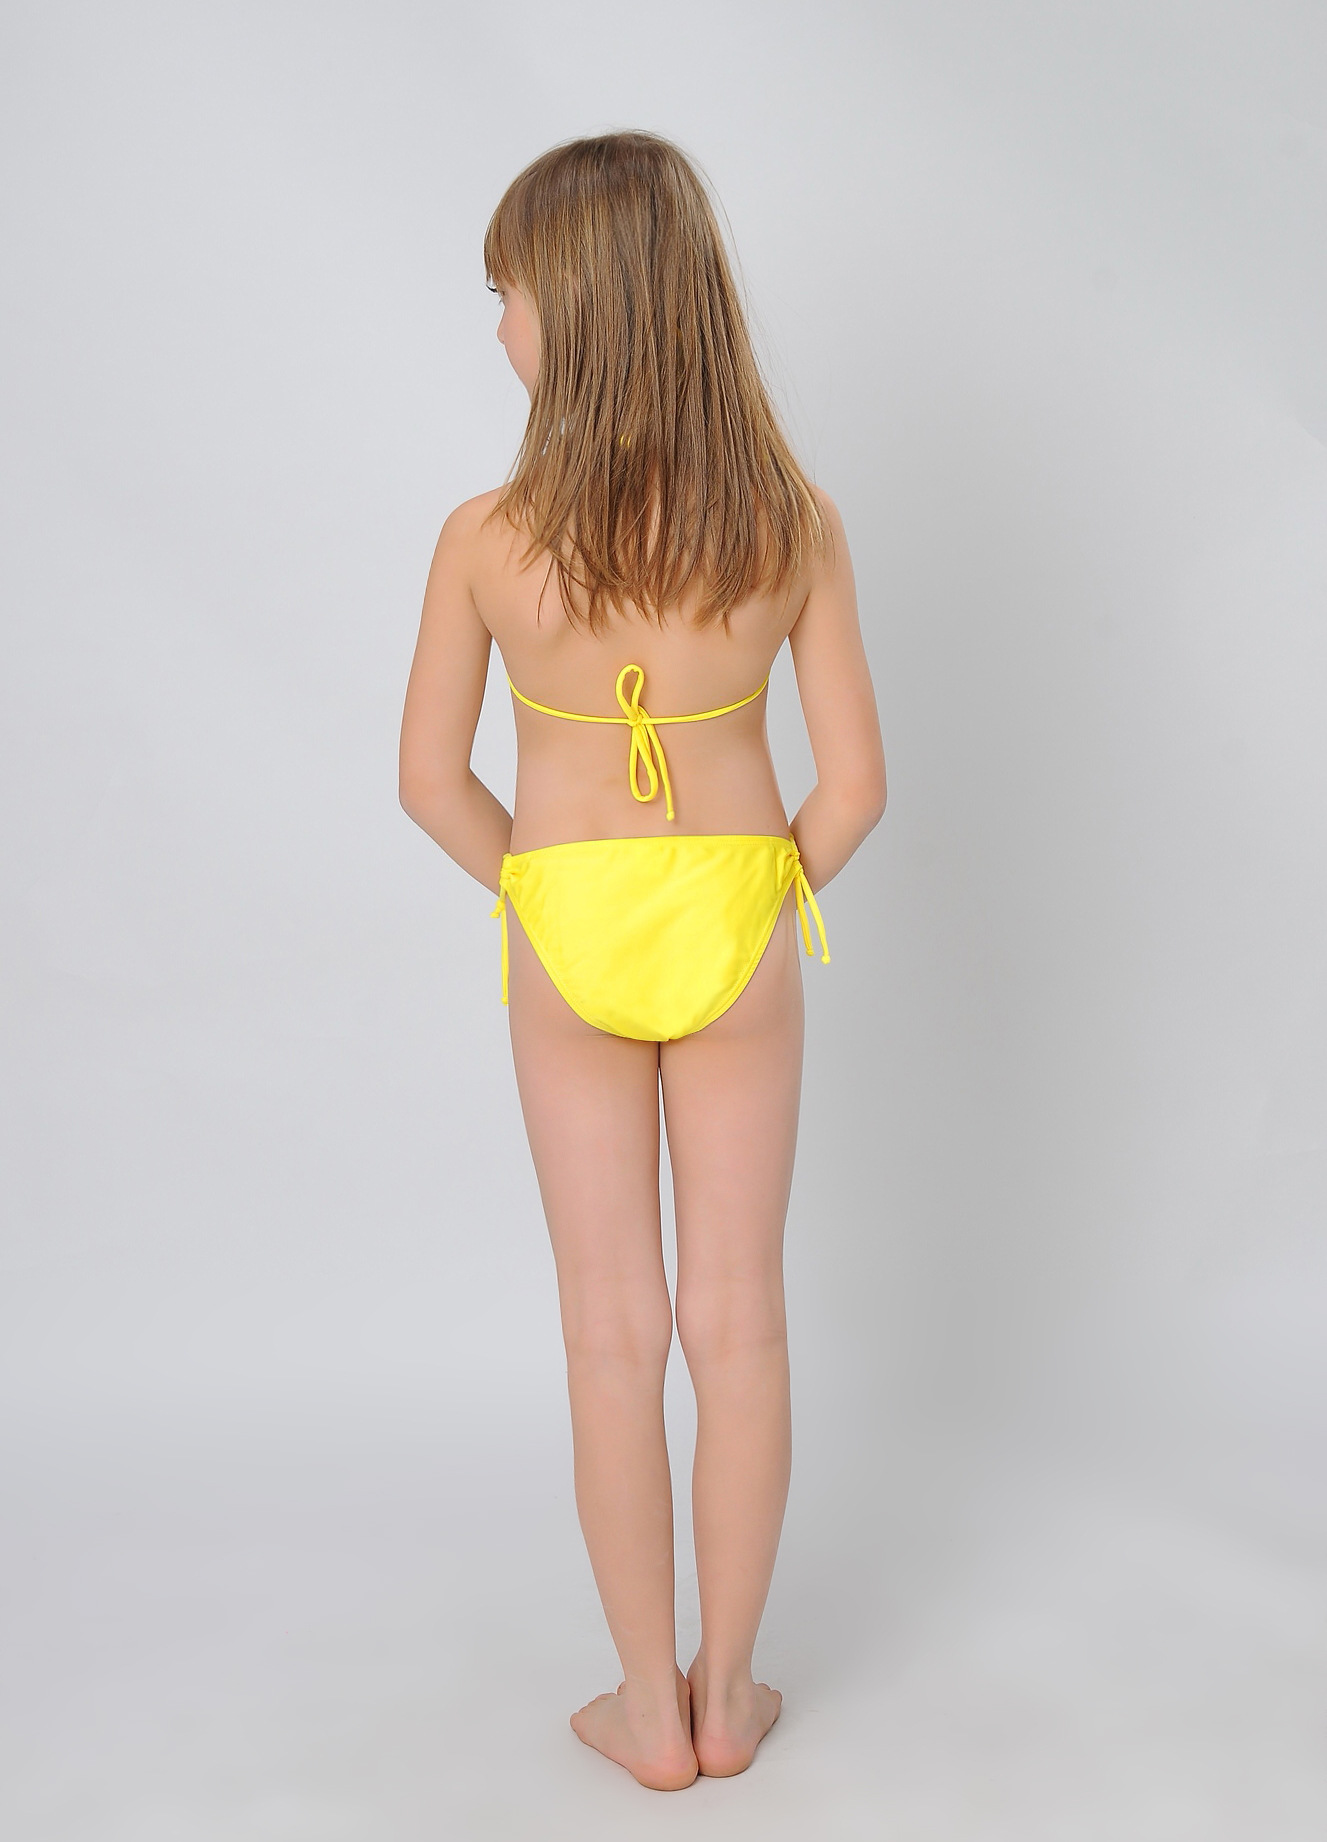 big girls' one piece swimwear Our selection of girls' one piece swimwear in sizes provides a variety of styles, patterns, and price points to fit any of your swimmer's needs. We have fashionable bathing suits for a casual day at the beach or pool.